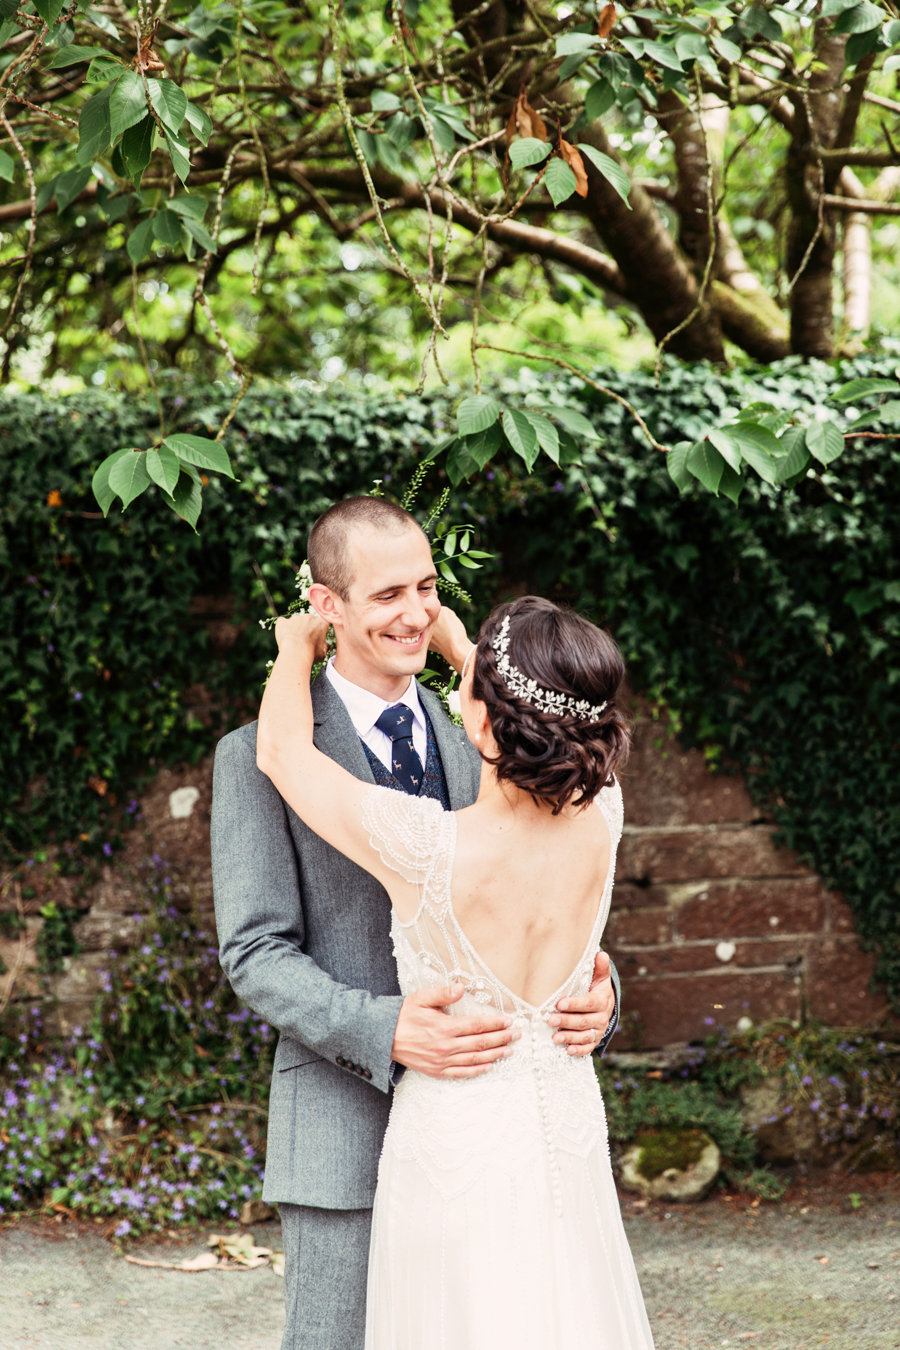 Askham Hall wedding venue on the English Wedding Blog, with Camilla Lucinda Photography (26)